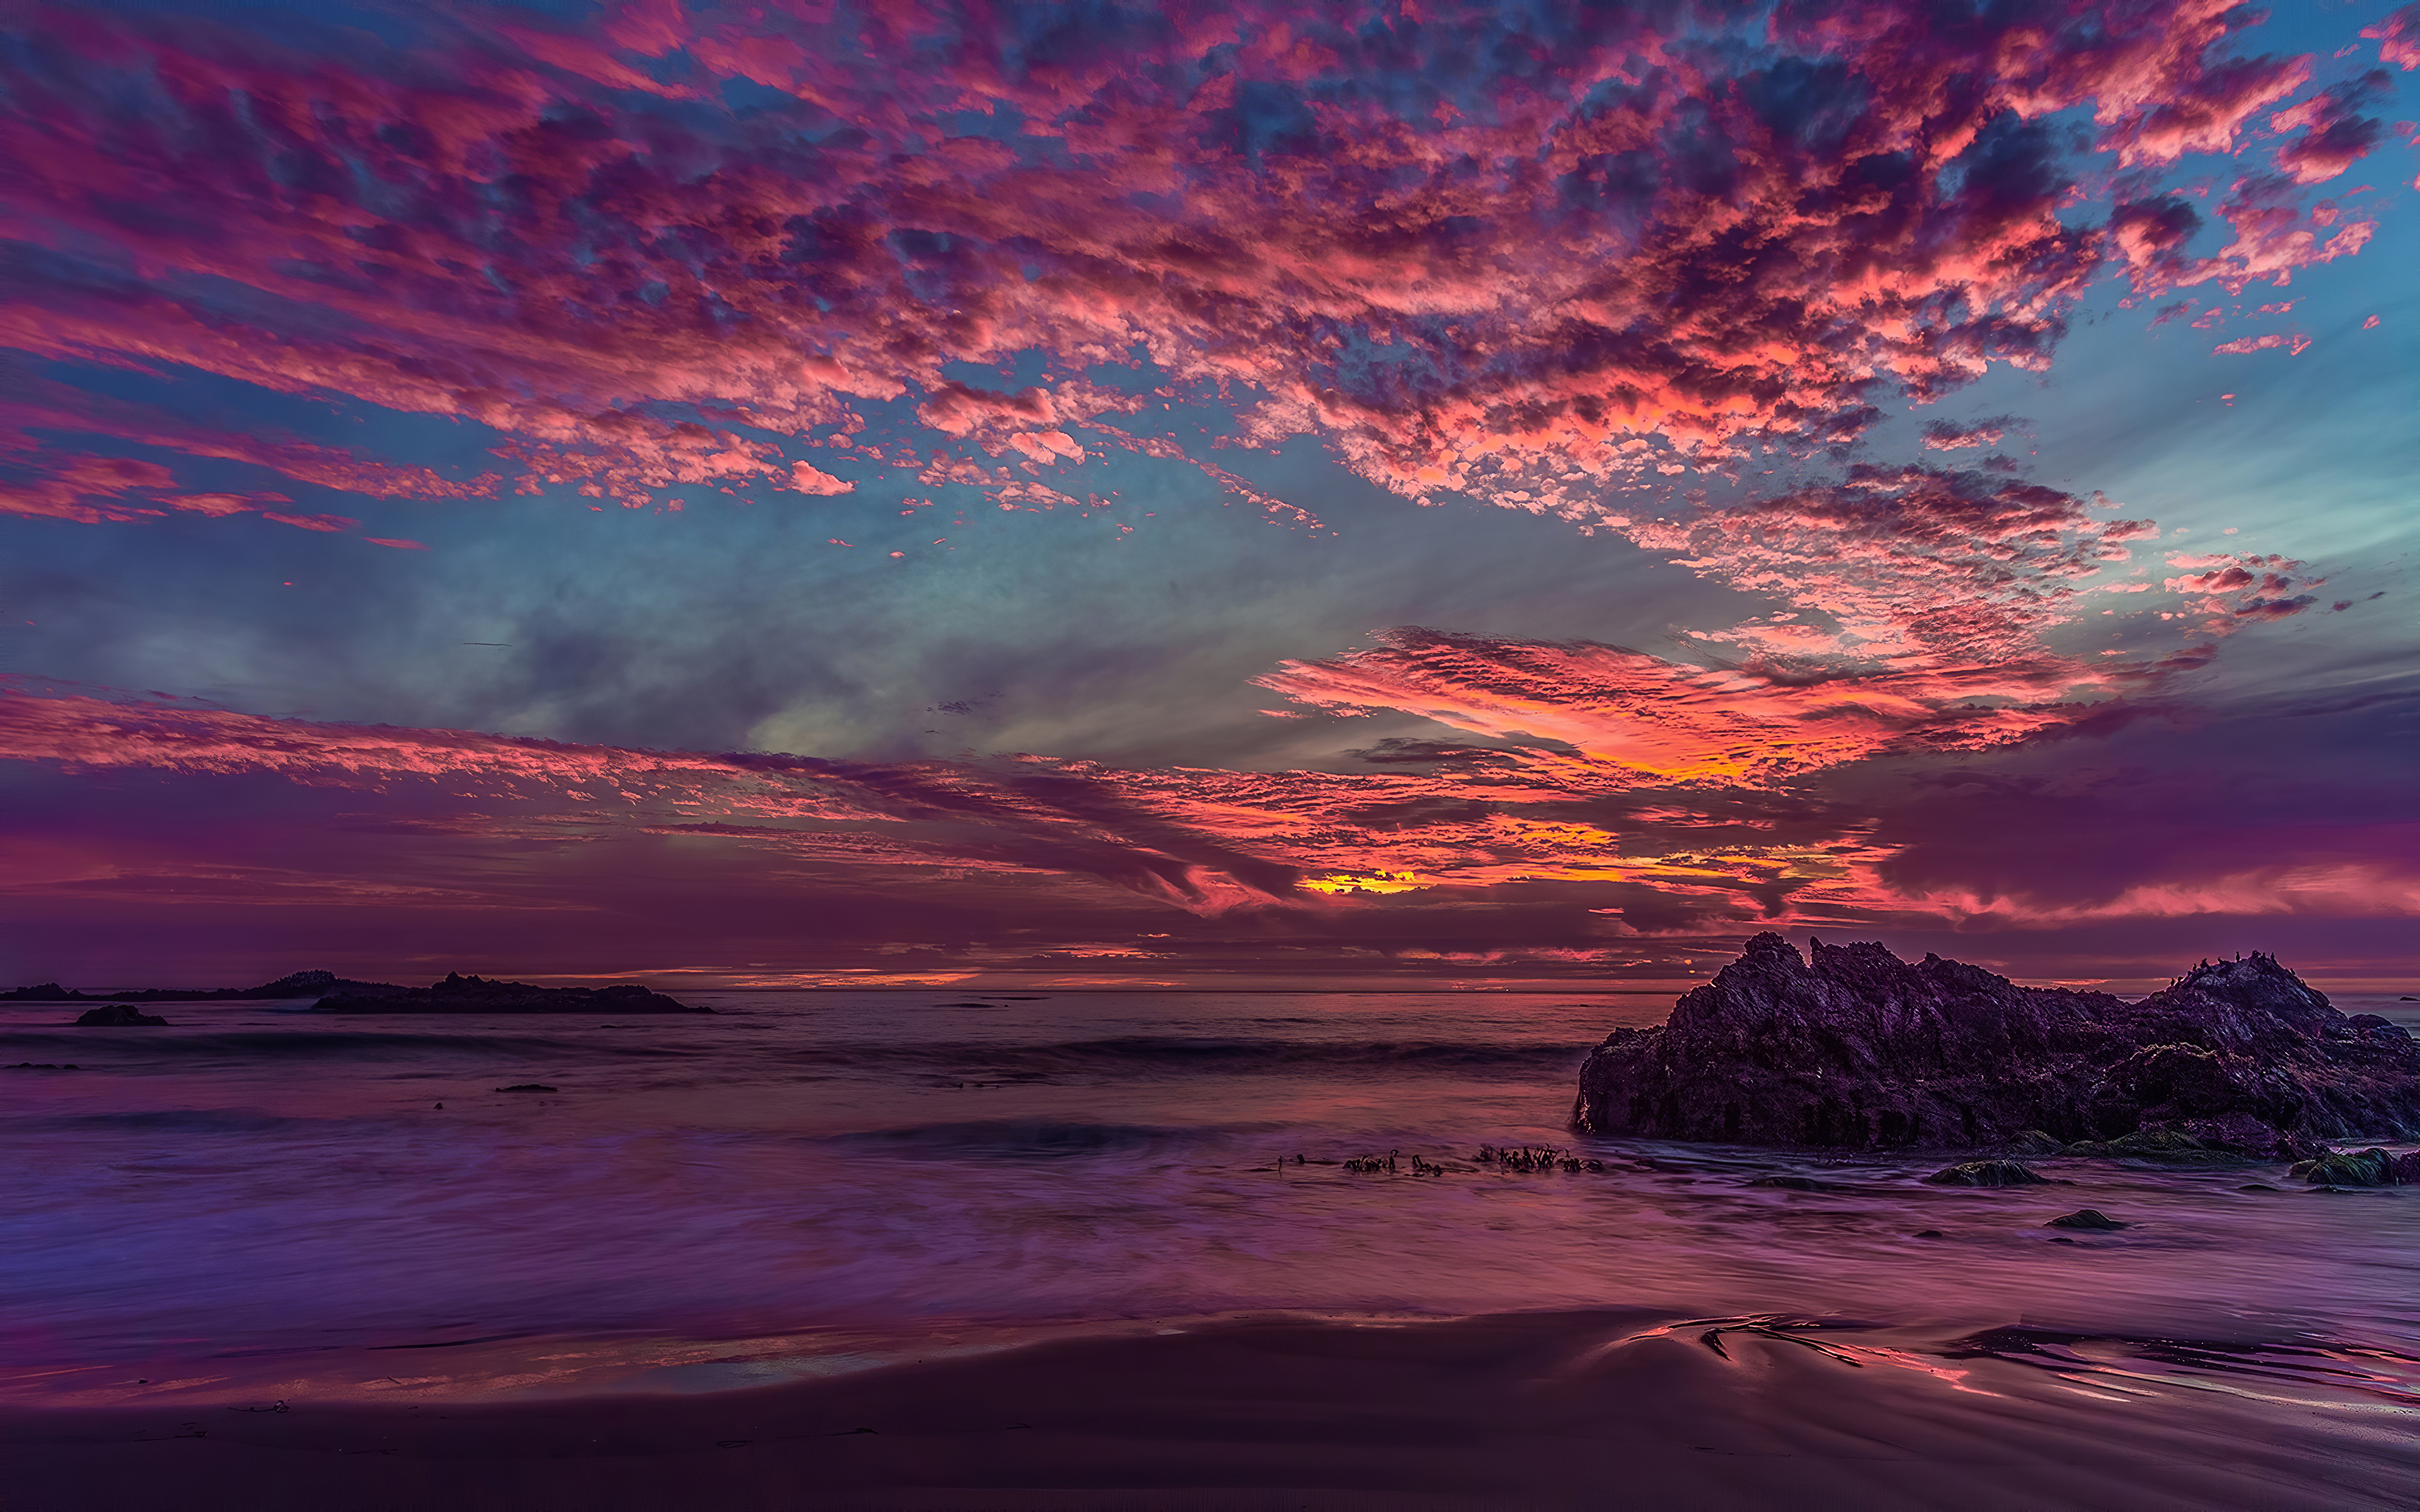 red rock clouds sunset 1574937488 - Red Rock Clouds Sunset -